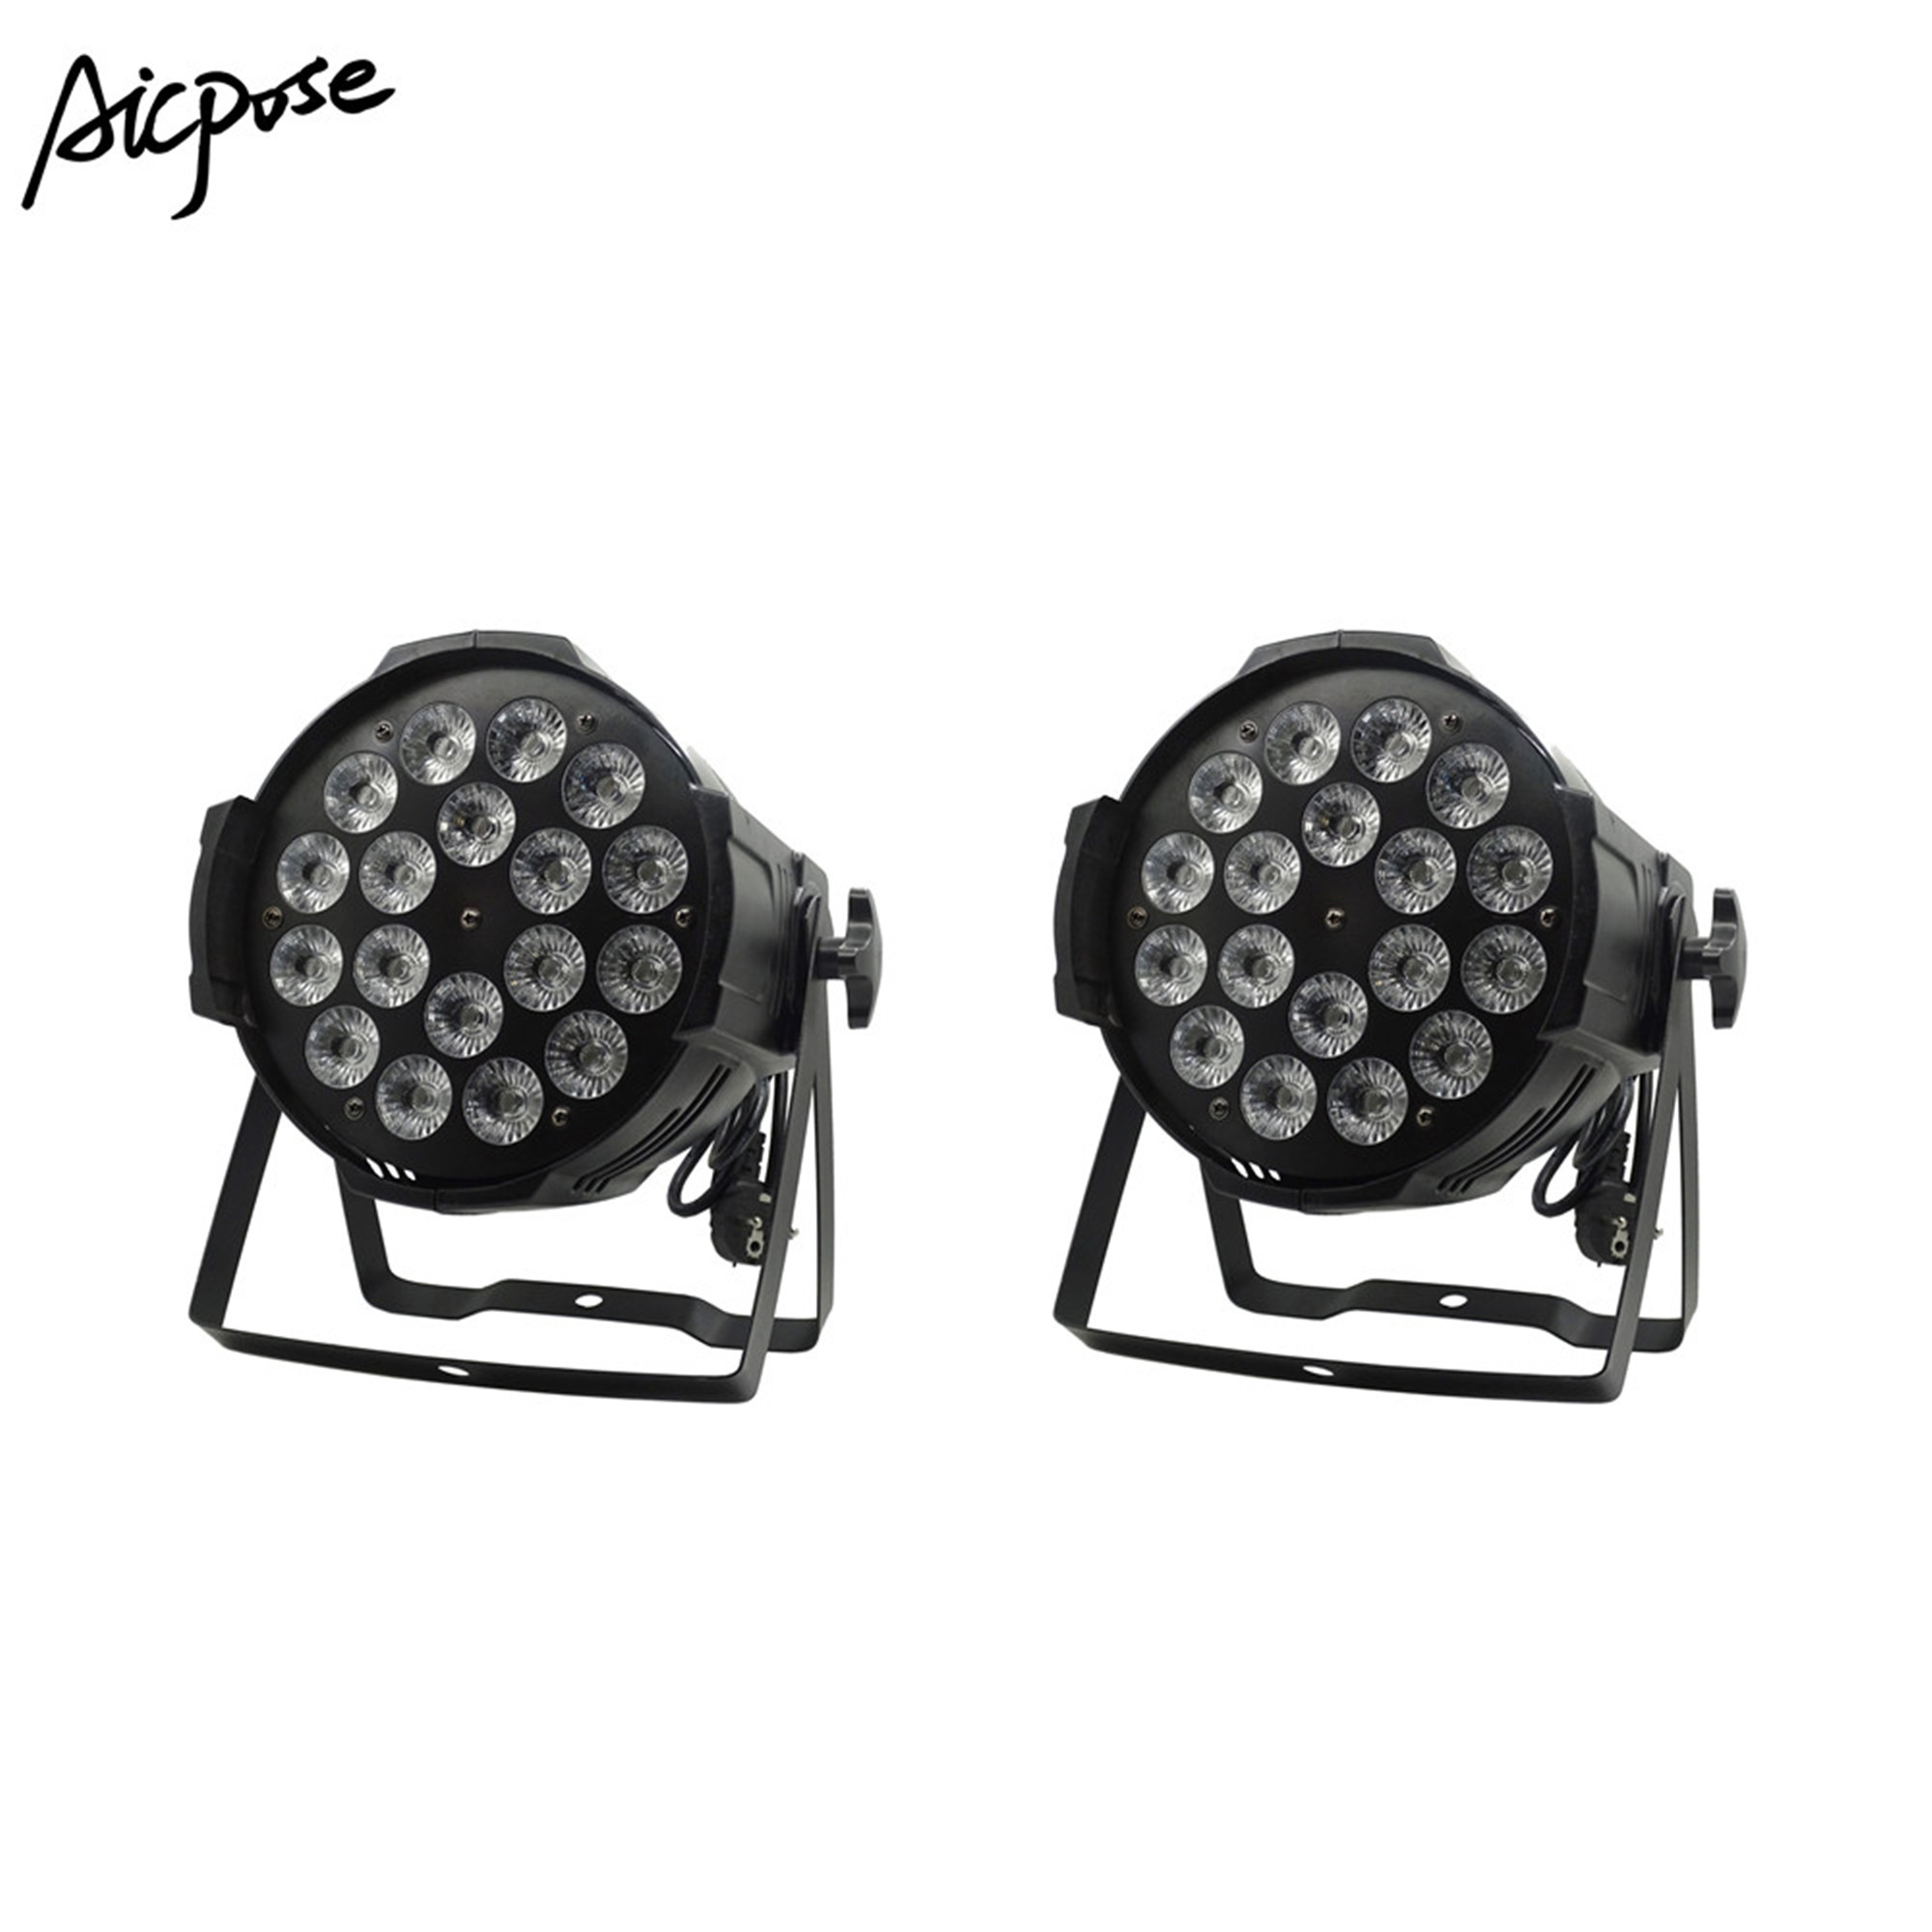 18*12w Light Aluminum LED Par 18x12W RGBW 4in1 LED Par Can Par 64 Led Spotlight Dj Projector Wash Lighting Stage Light